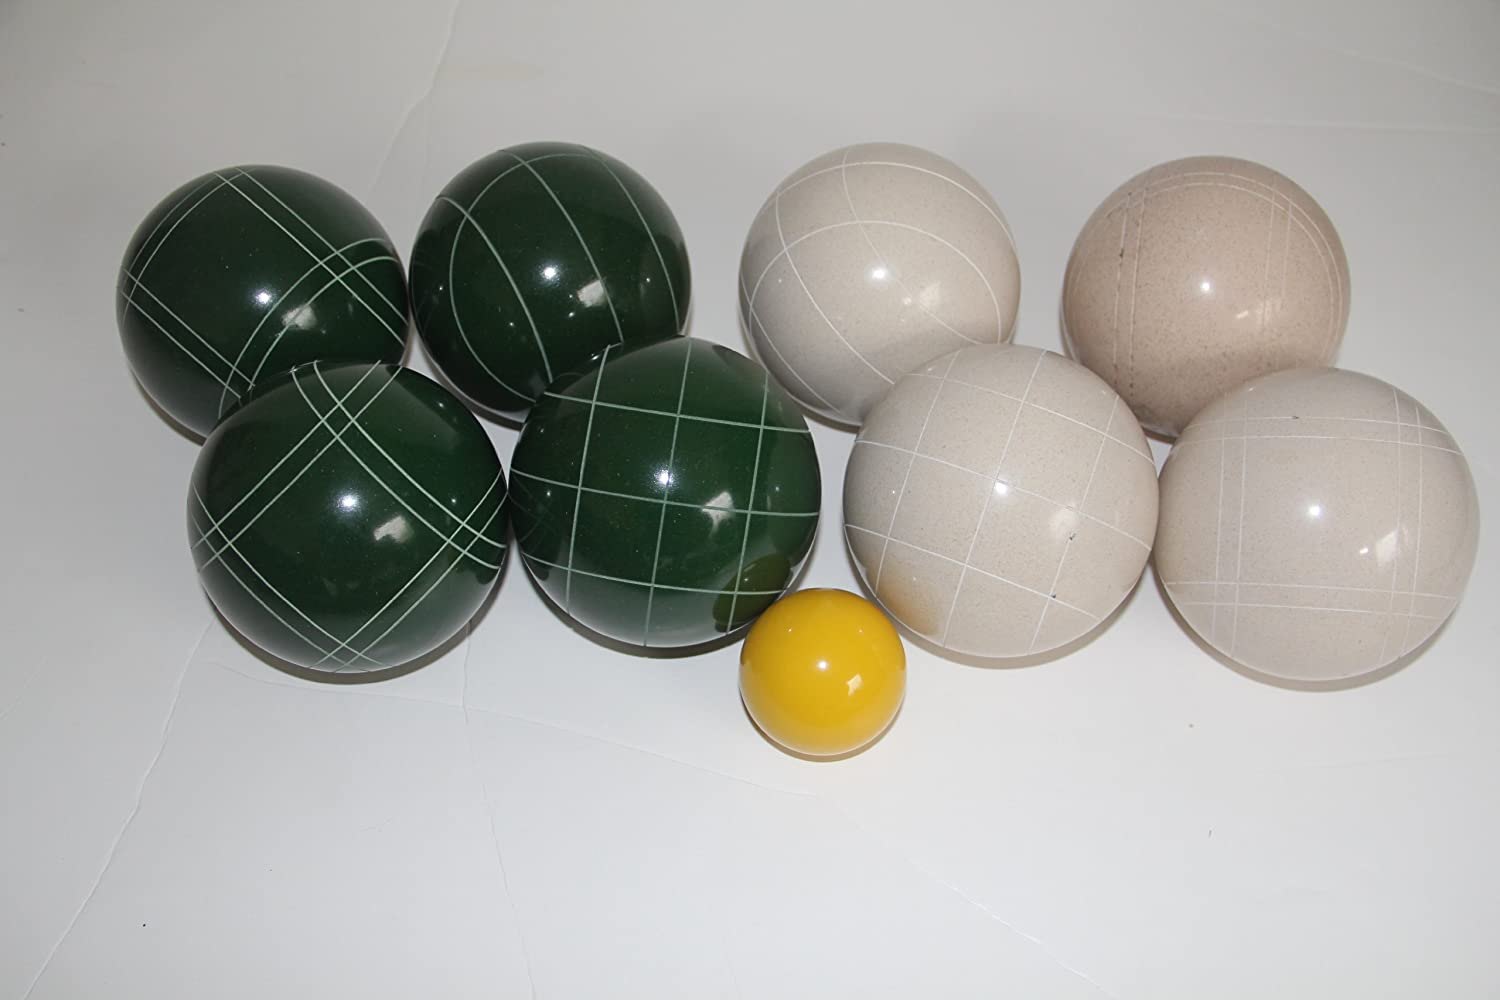 Premium Quality EPCO Tournament Bocce Set – 107mm White and Green Bocce Balls… günstig